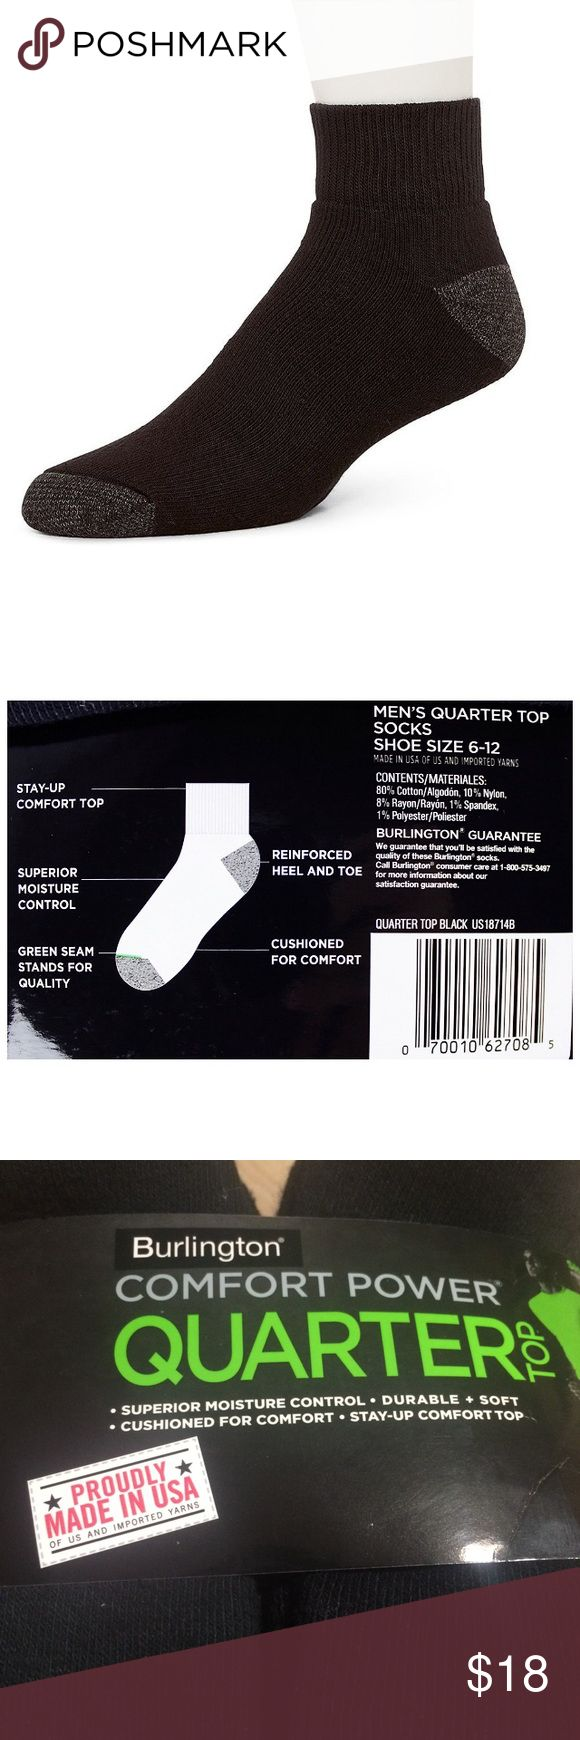 10 Pairs Black Socks Quarter Top Made in USA Fits Shoe Size: 6-12. Superior Moisture Control. Cushioned for Comfort. Made in U.S.A. 80% Cotton, 10% Nylon, 8% Rayon, 1% Spandex and 1% Polyester. Burlington Underwear & Socks Athletic Socks